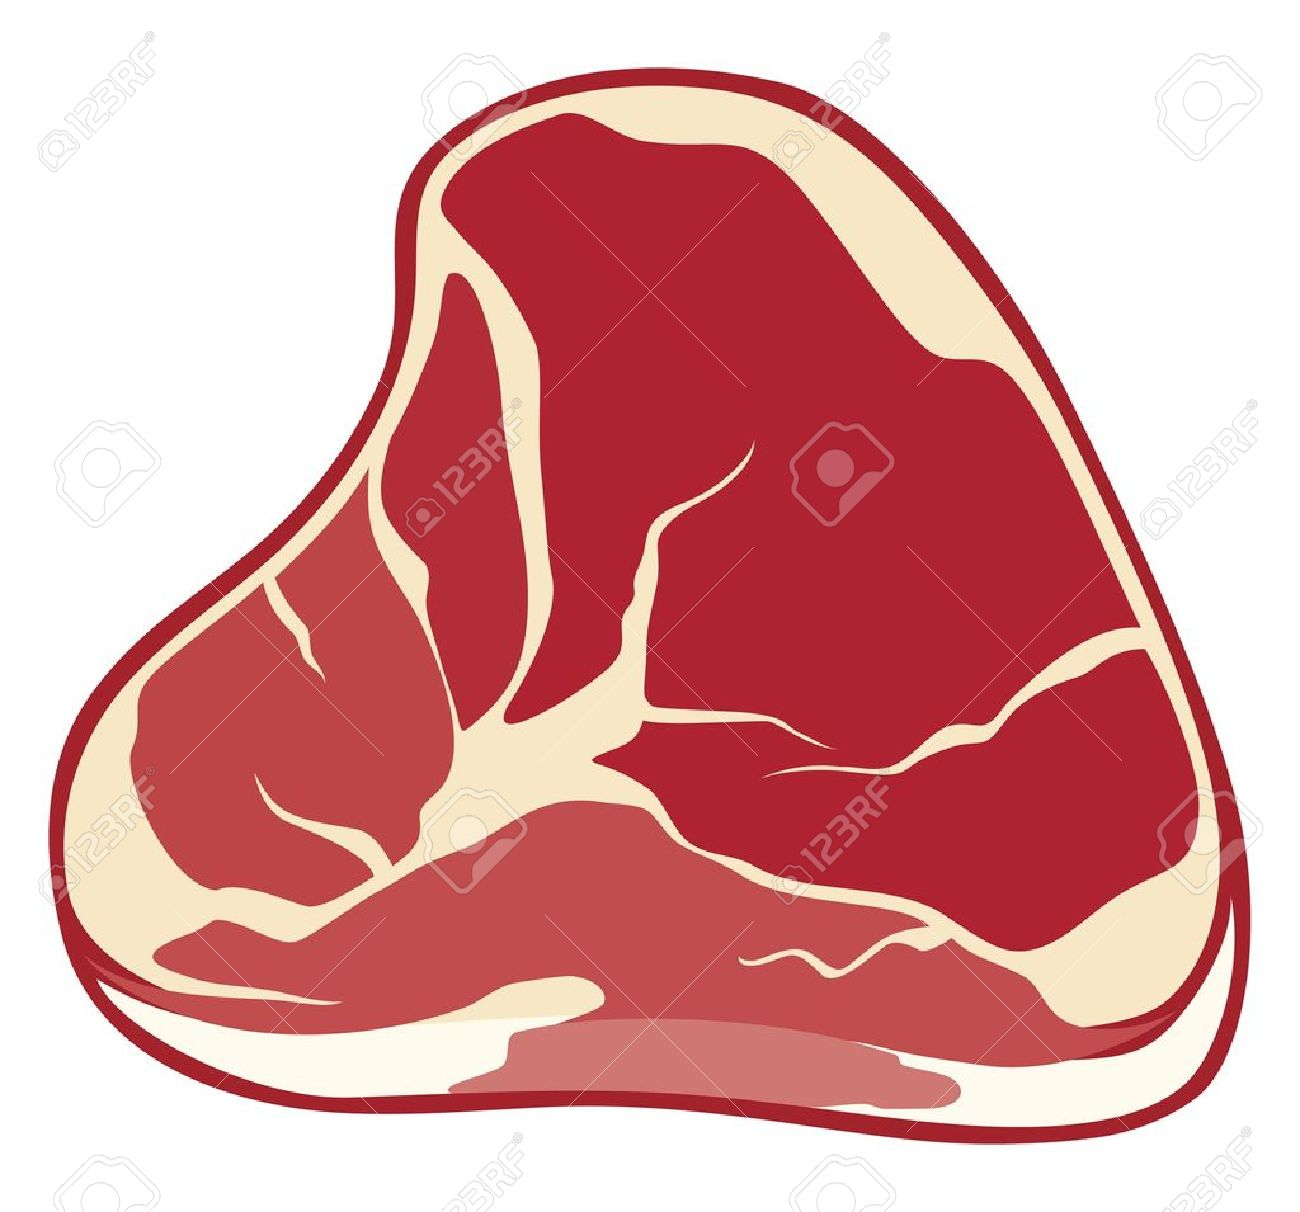 Free Steak Meat Cliparts, Download Free Clip Art, Free Clip.